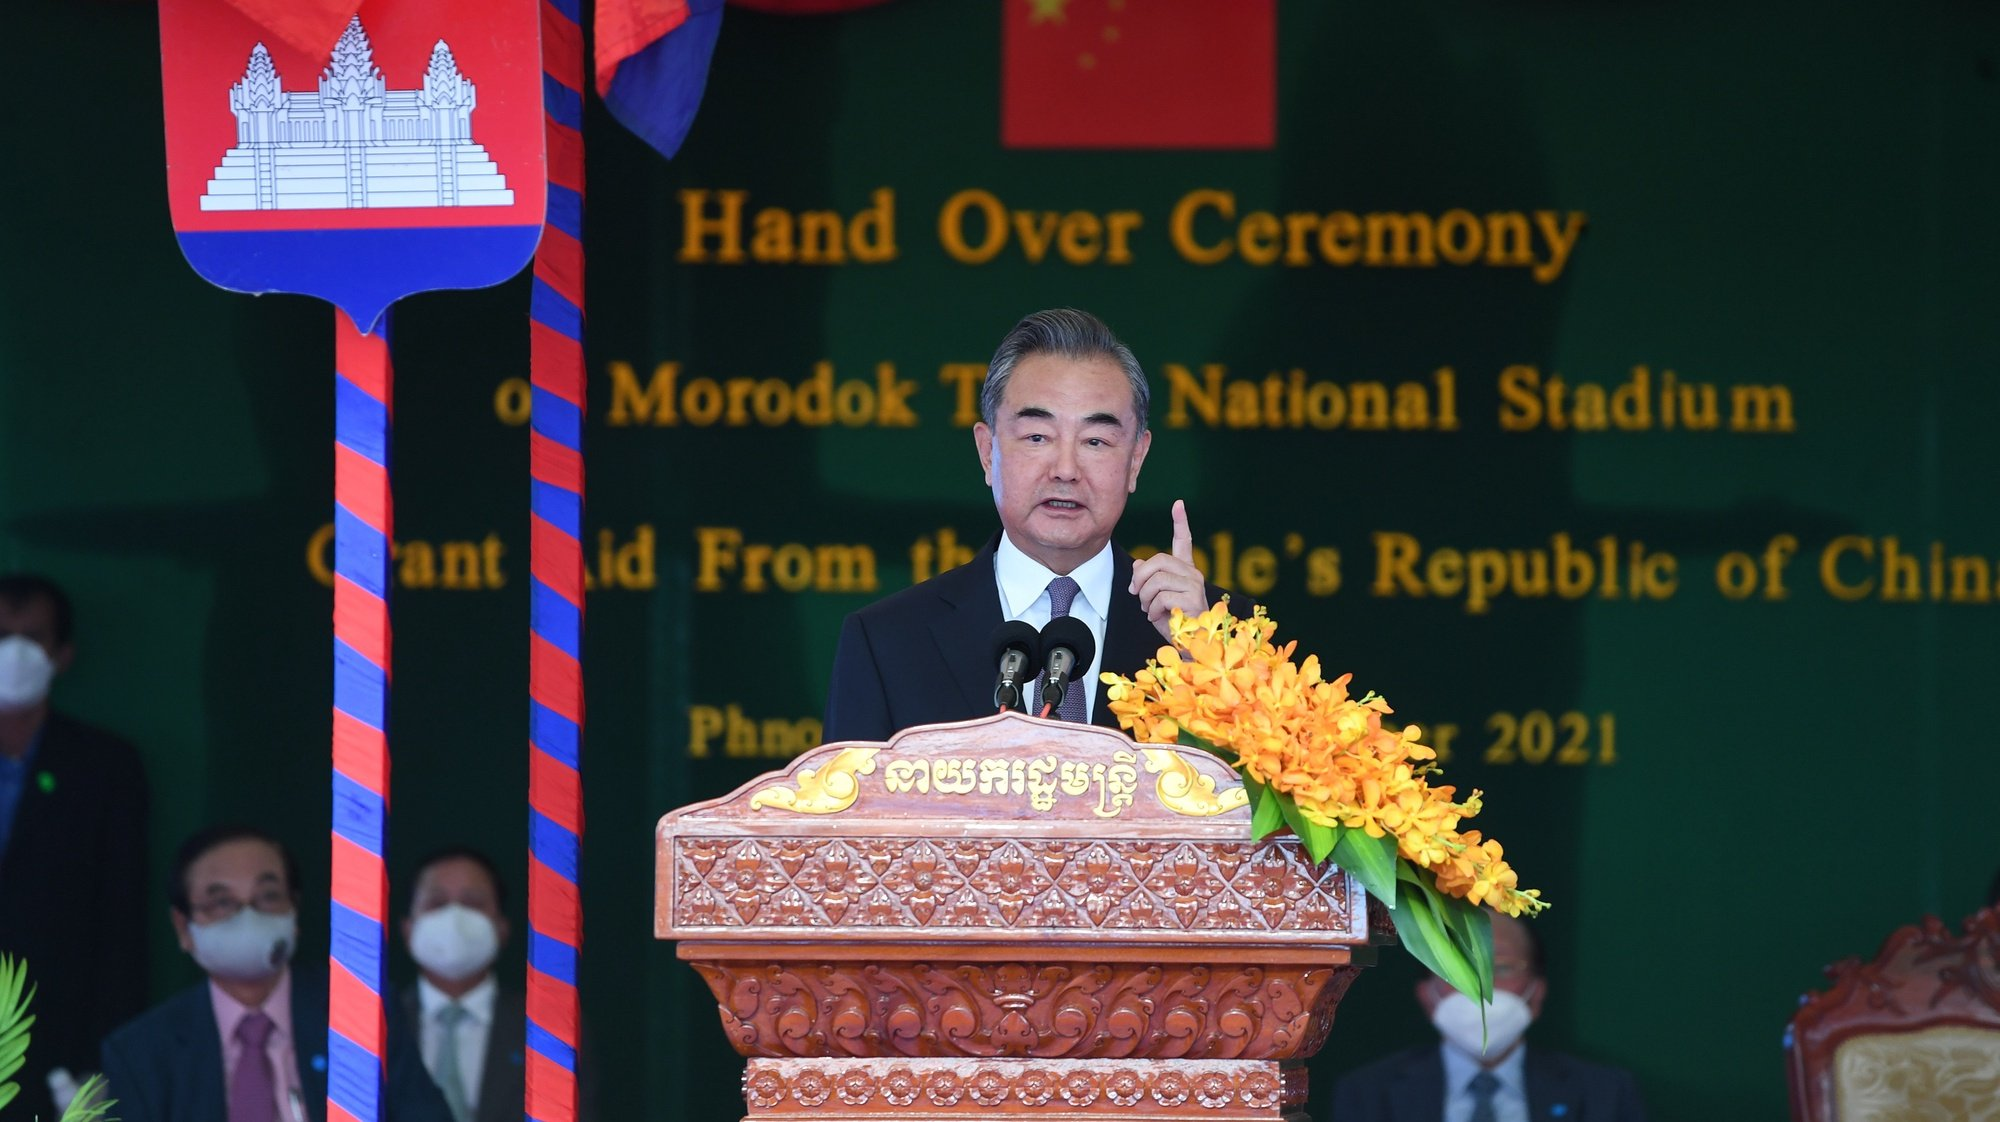 epa09463447 Chinese Foreign Minister Wang Yi speaks during a handover ceremony of the Morodok Techo National Stadium in Phnom P?enh, Cambodia, 12 September 2021. Wang Yi is on an official visit to Cambodia, during which he met with Cambodian Prime Minister Hun Sen and attended a handover ceremony of the Morodok Techo National Stadium funded by the Chinese government.  EPA/TANG CHHIN SOTHY / POOL